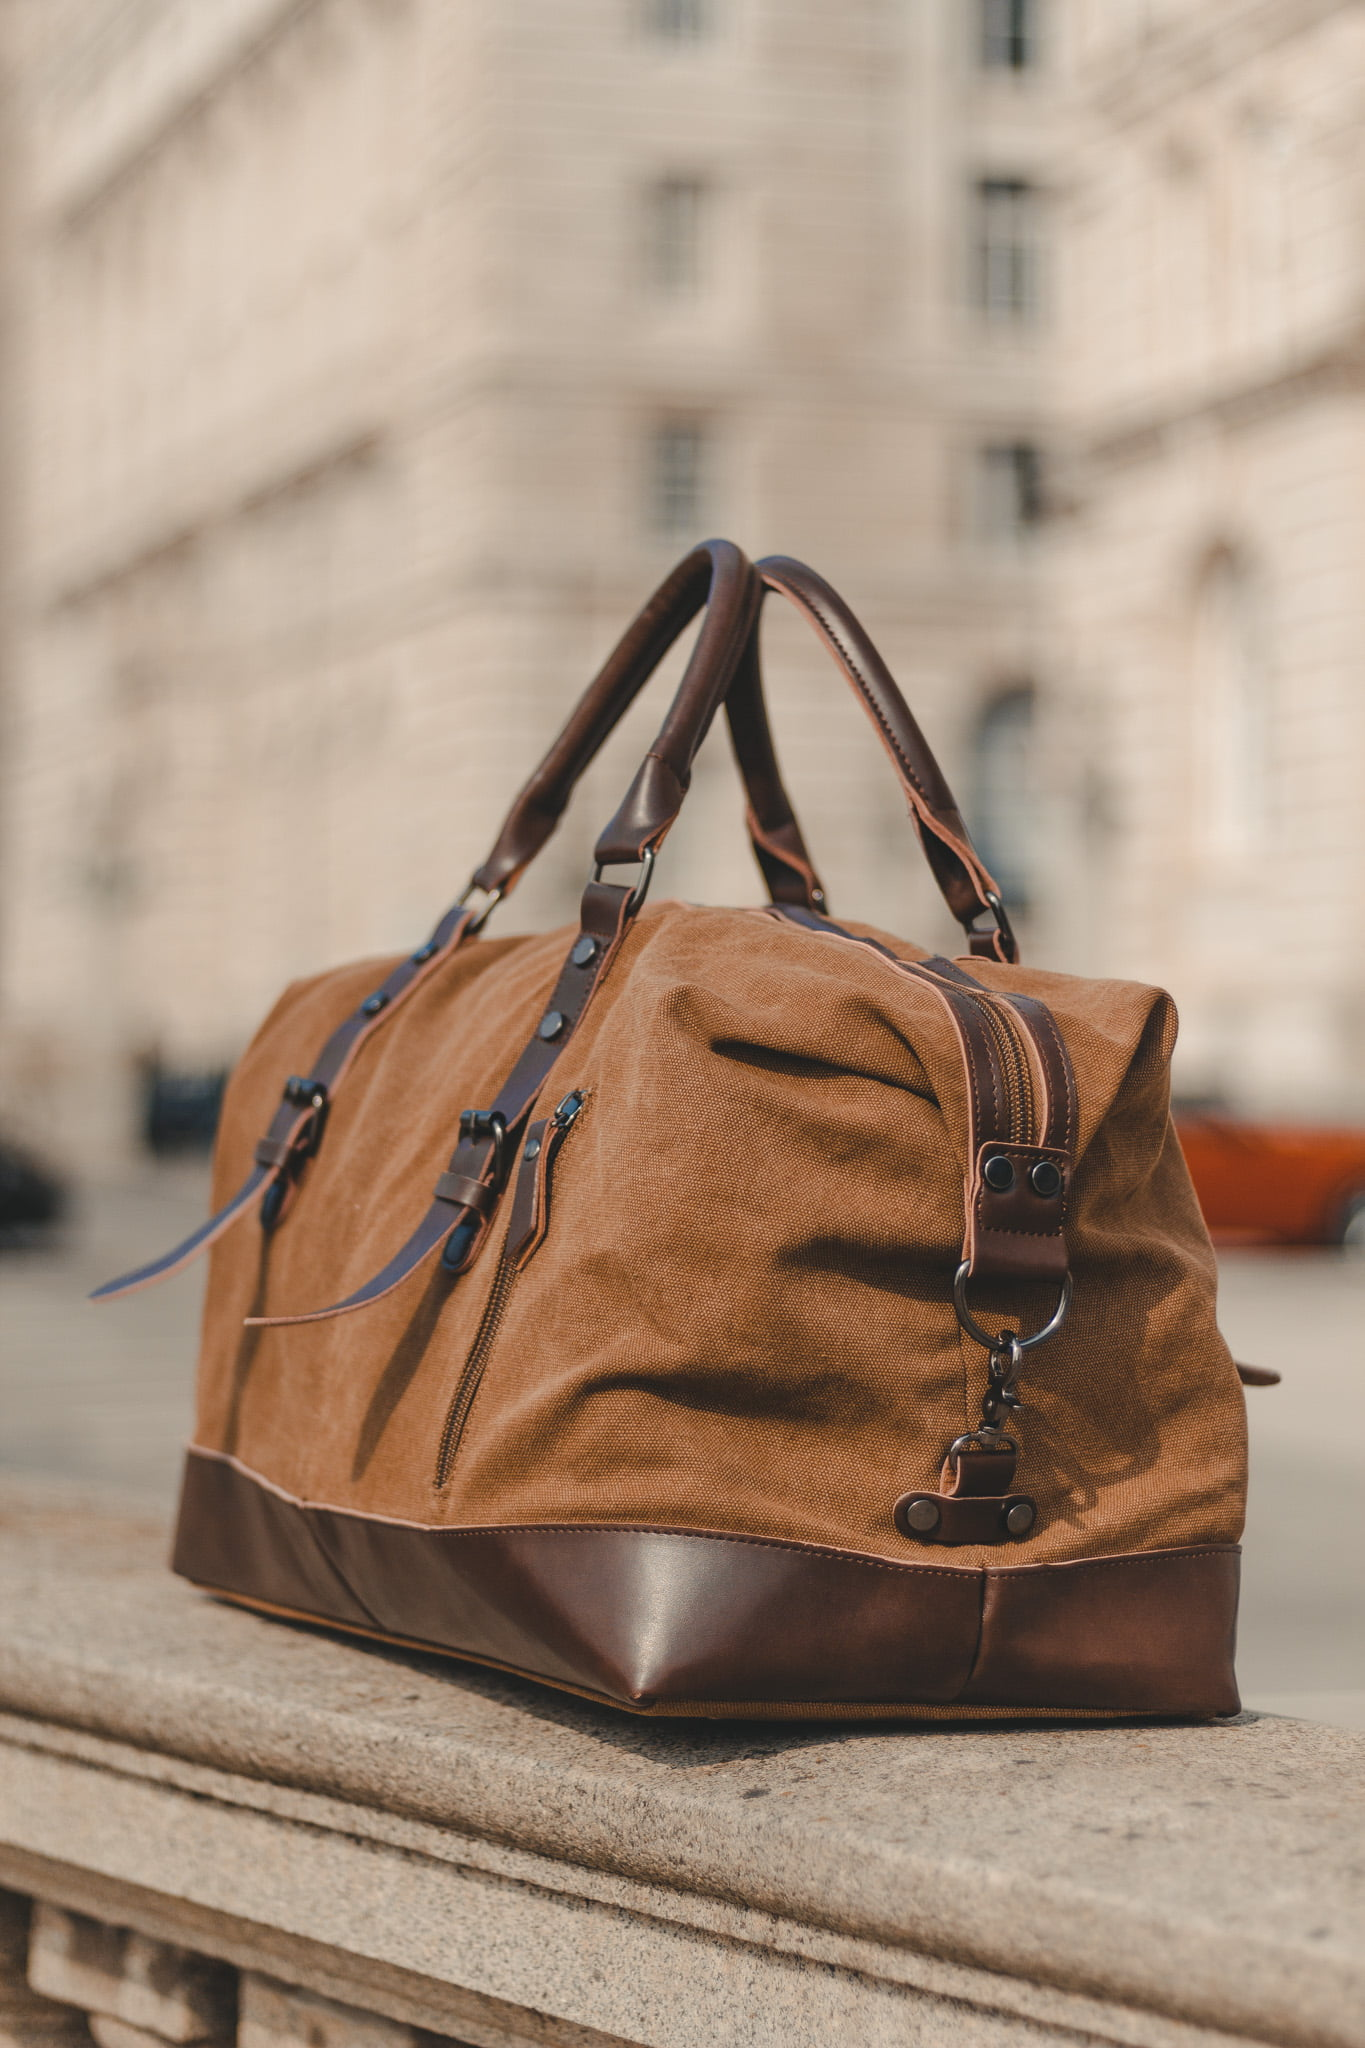 Cotton Canvas and Man Made Vegan Leather Weekender Bag - Menswear Denim Rugged Style Outfit - The Ashdown by Oldfield